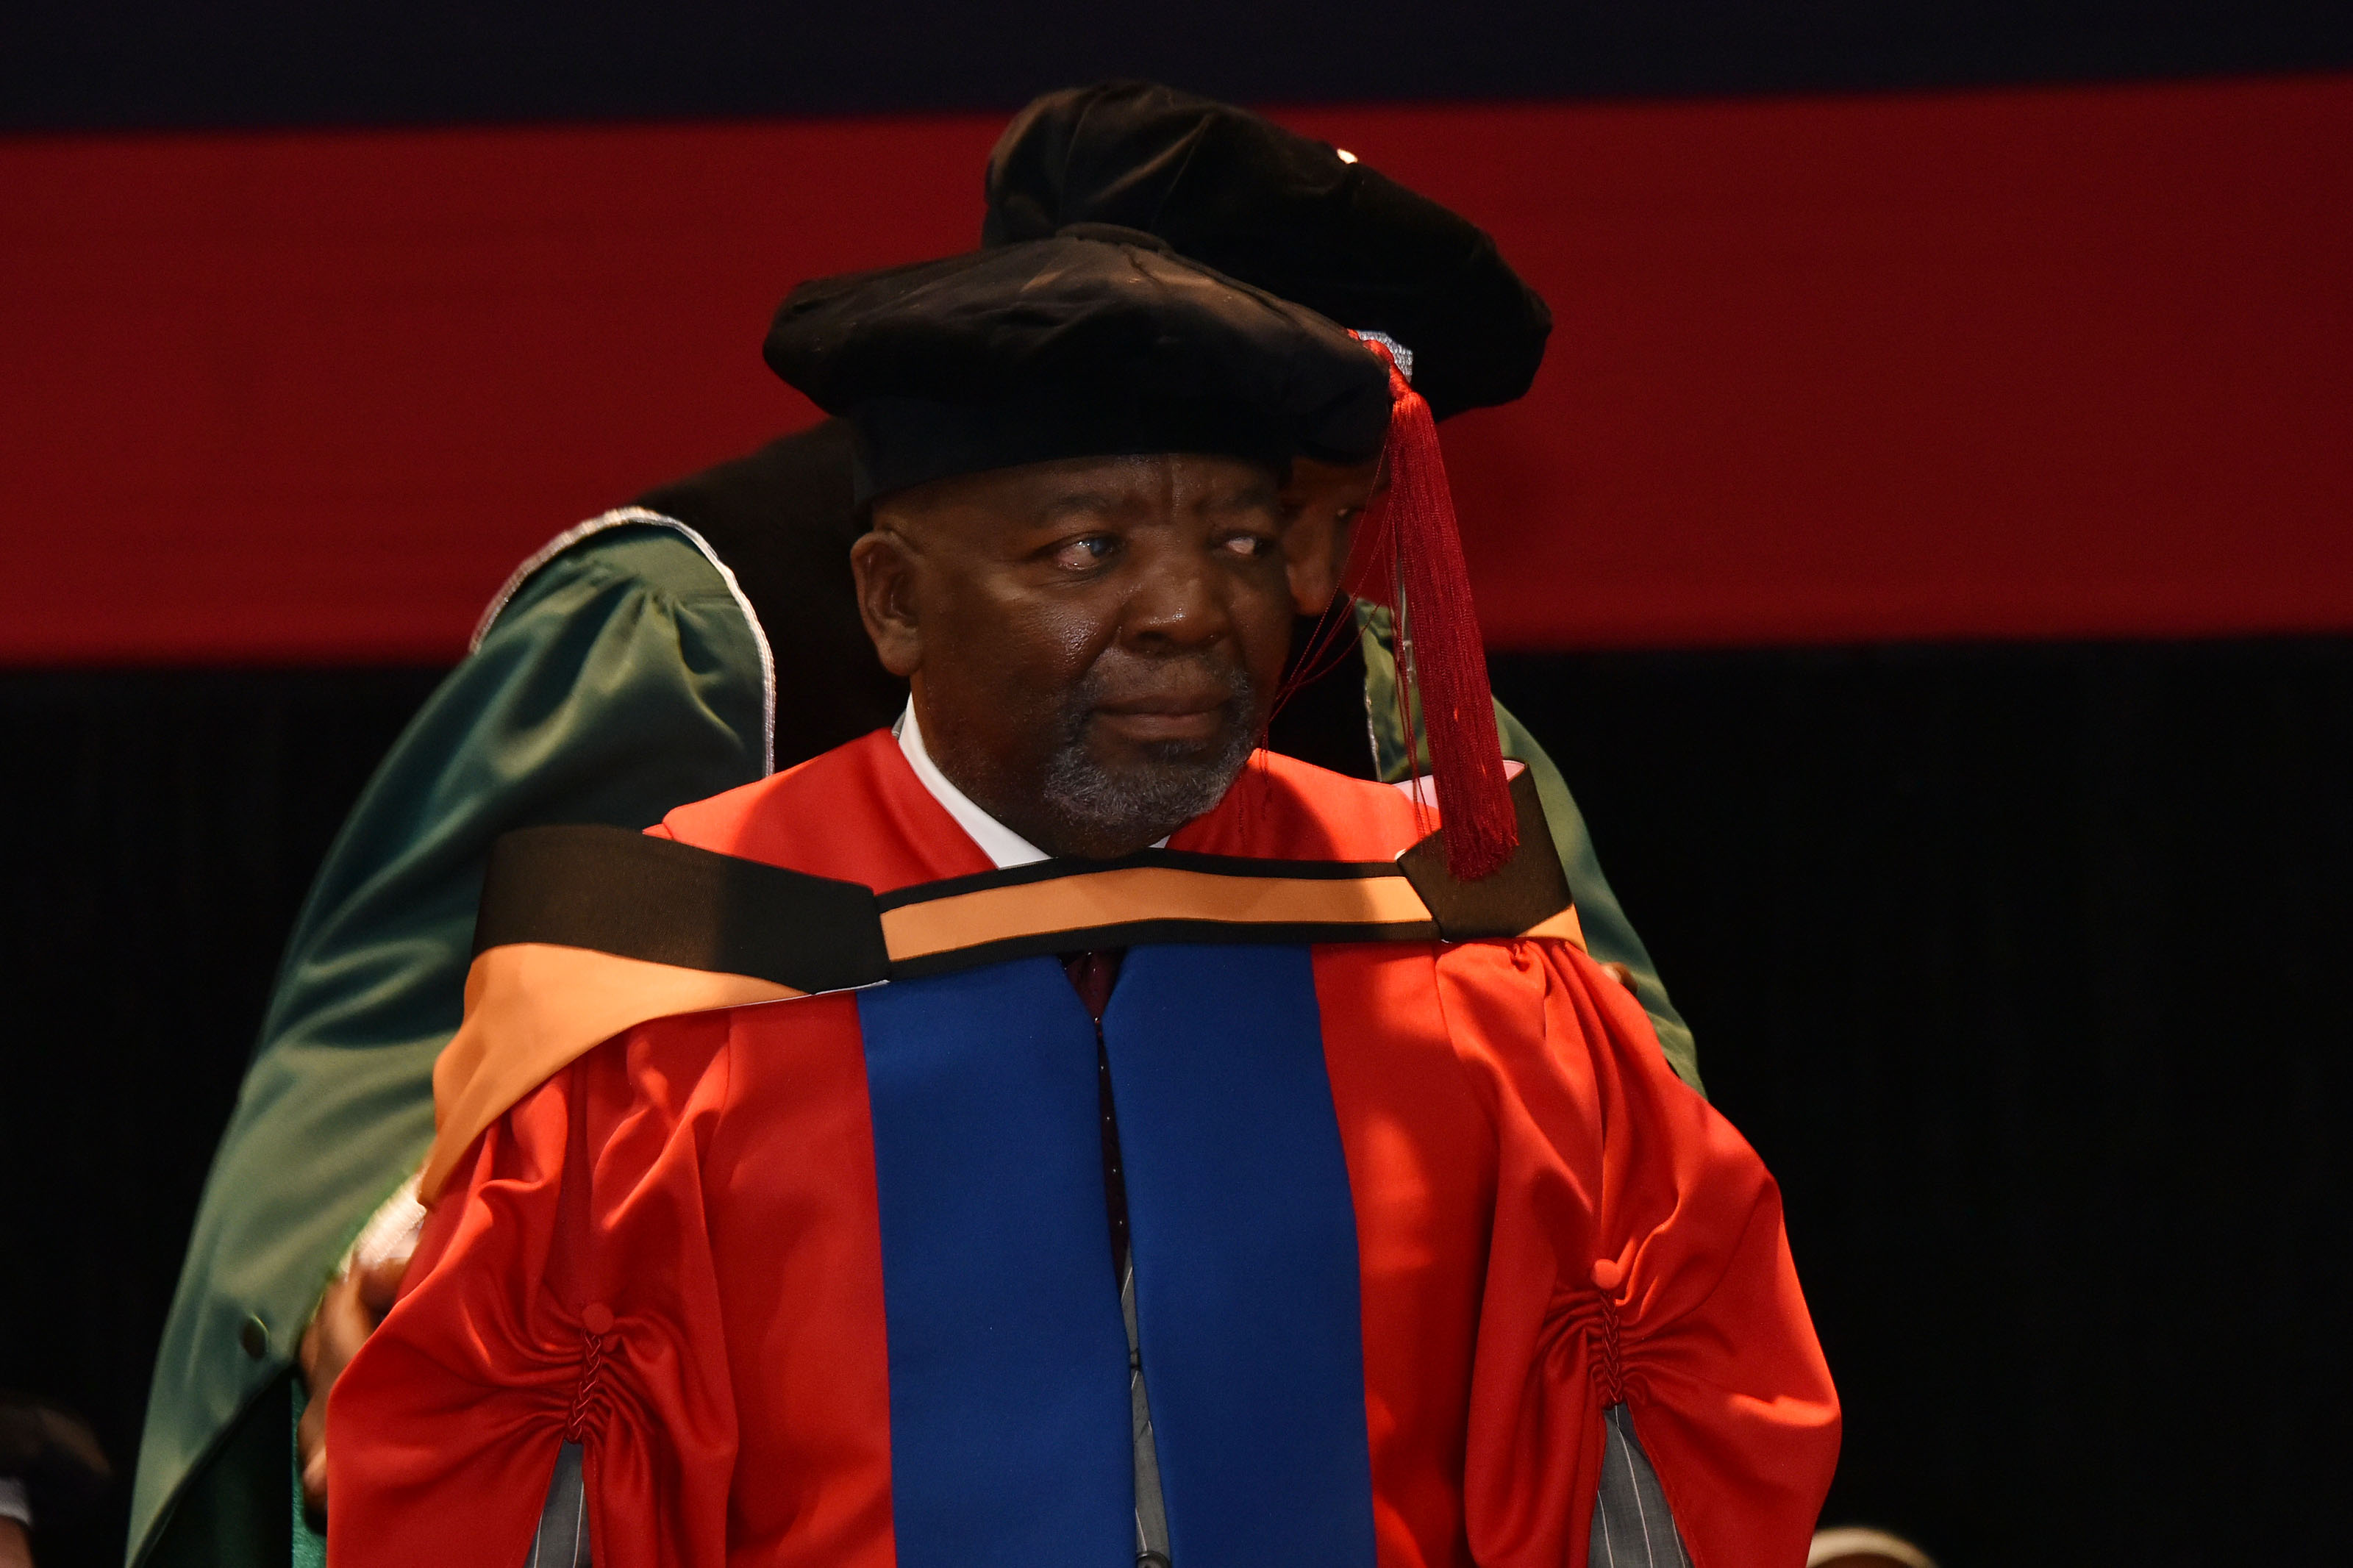 Dr Jerry Mofokeng Wa Makhetha, recipient of a Doctor of Letters honorary degree.